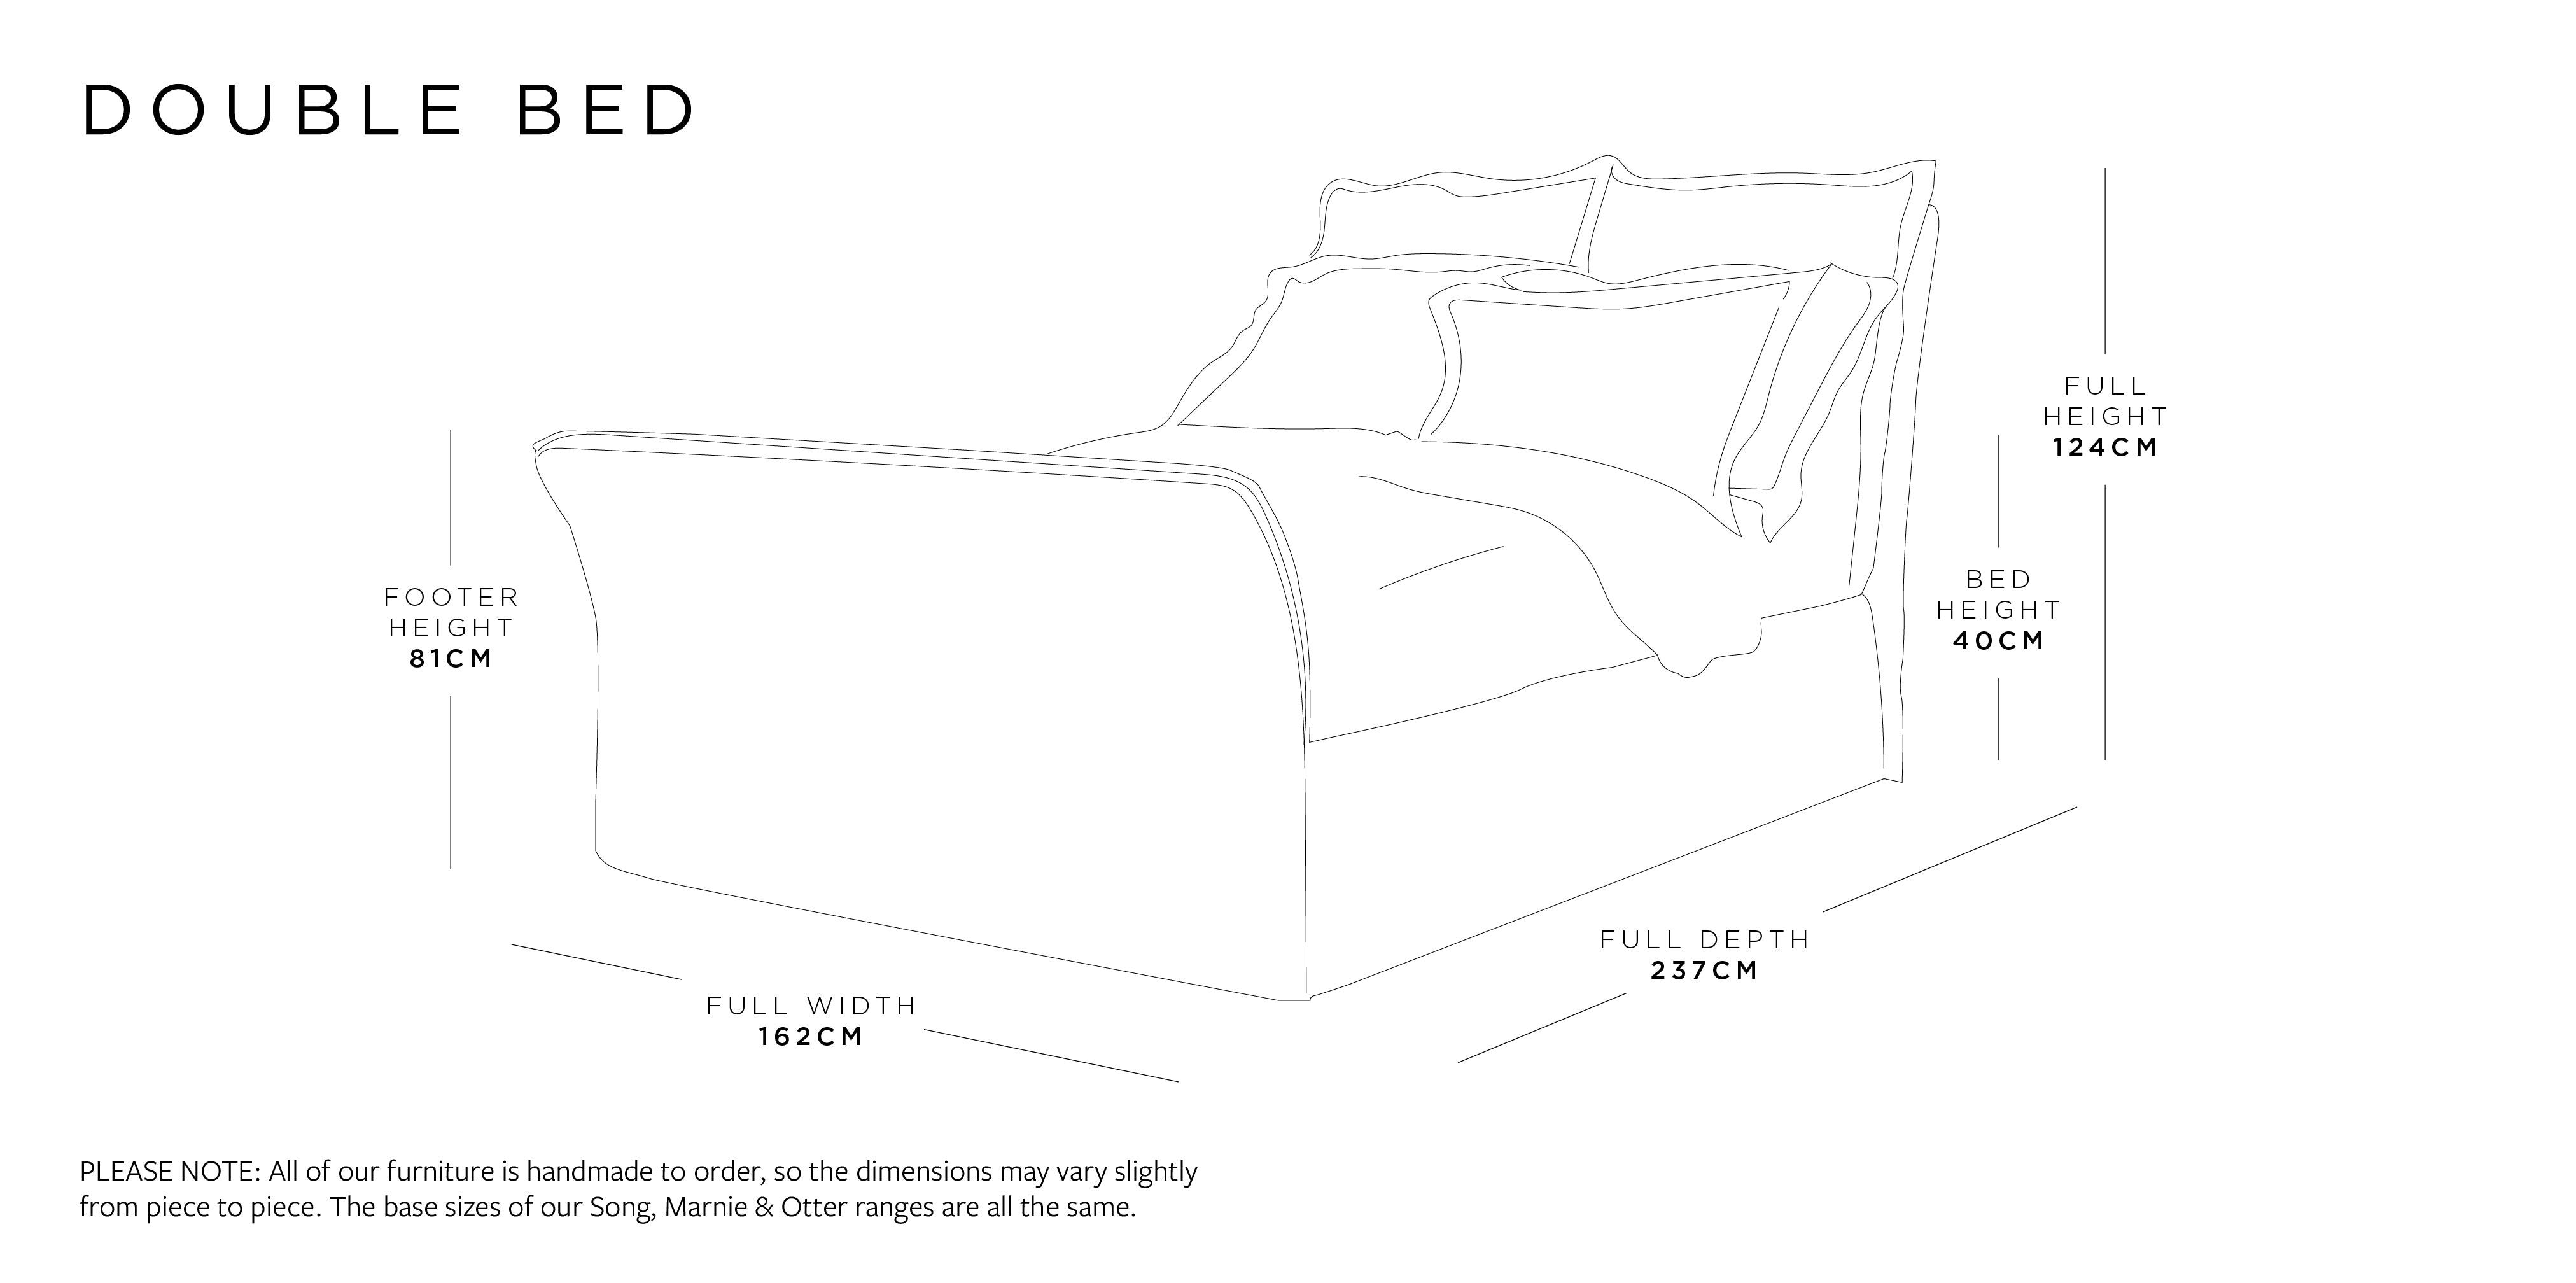 Double Bed Dimensions